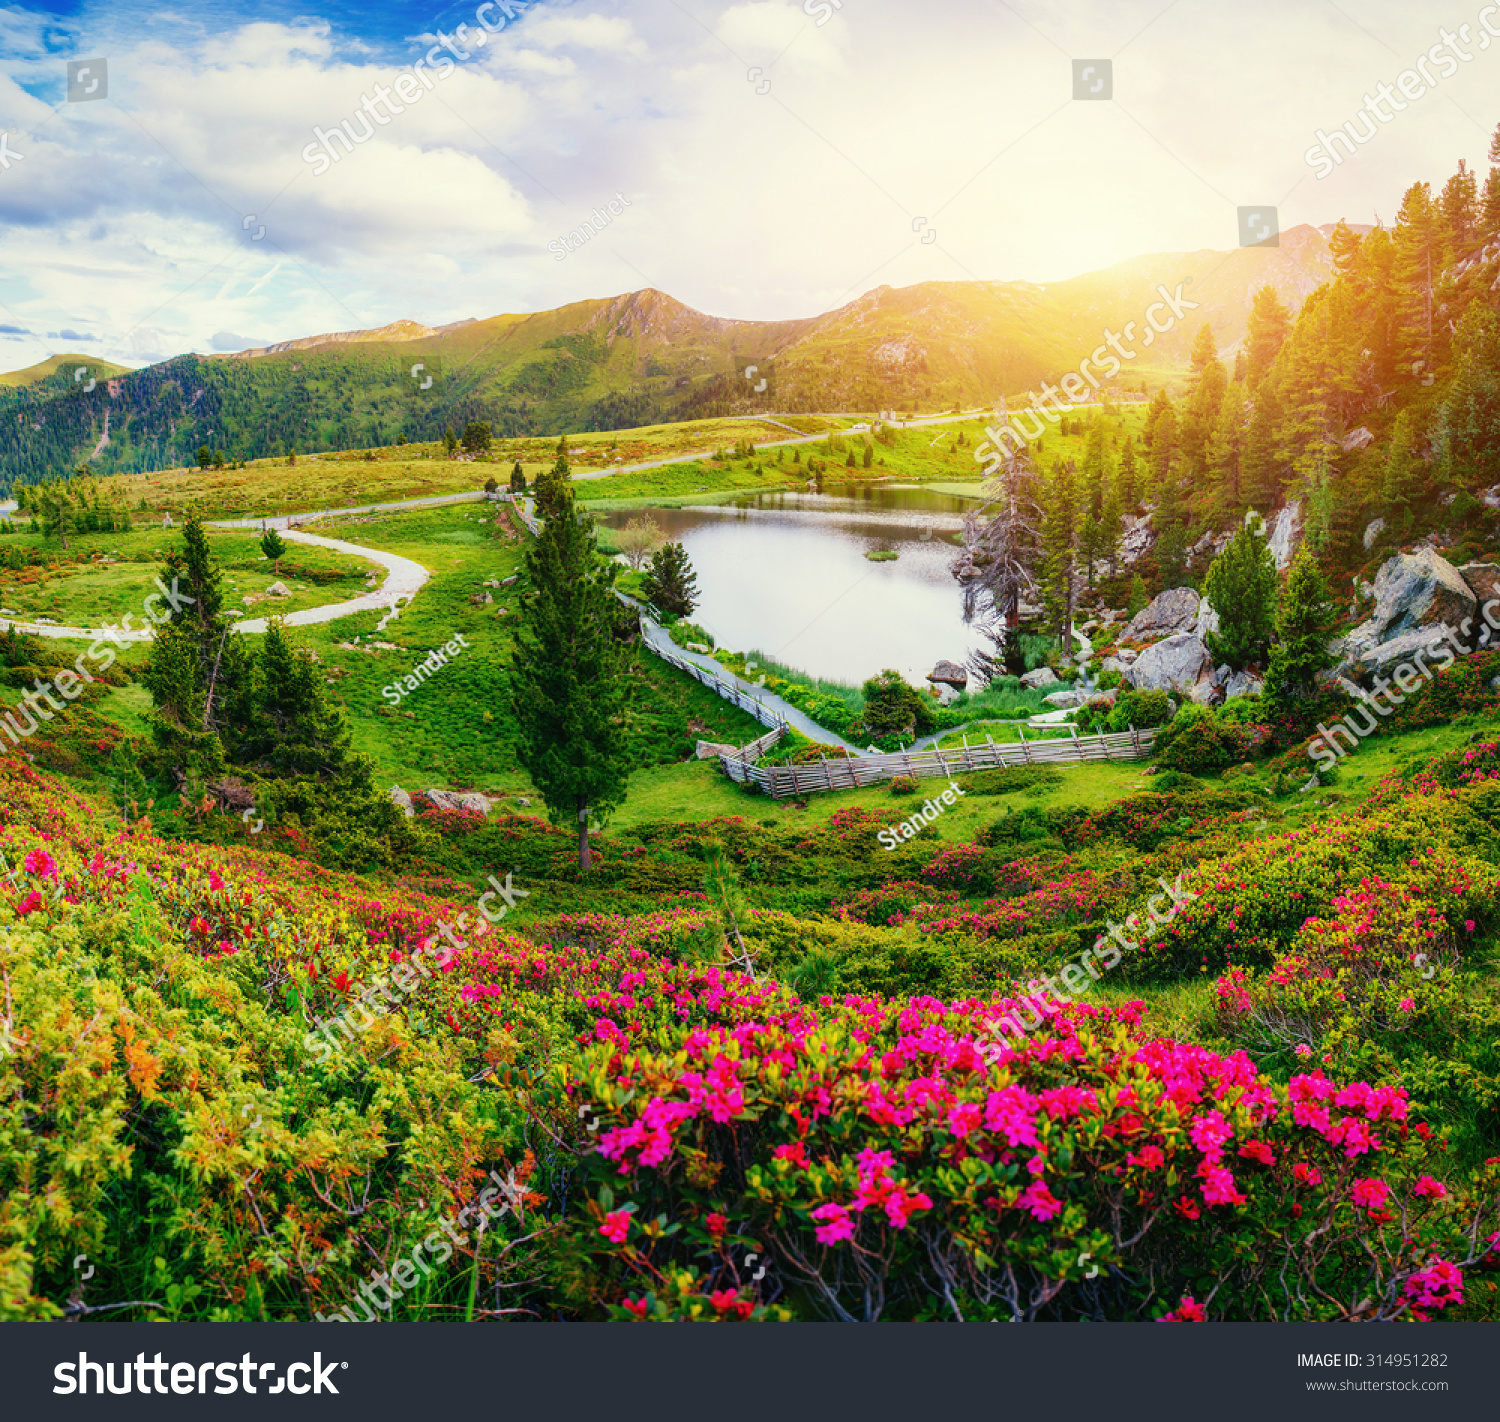 Glade With Flowers Near The Water In Mountains